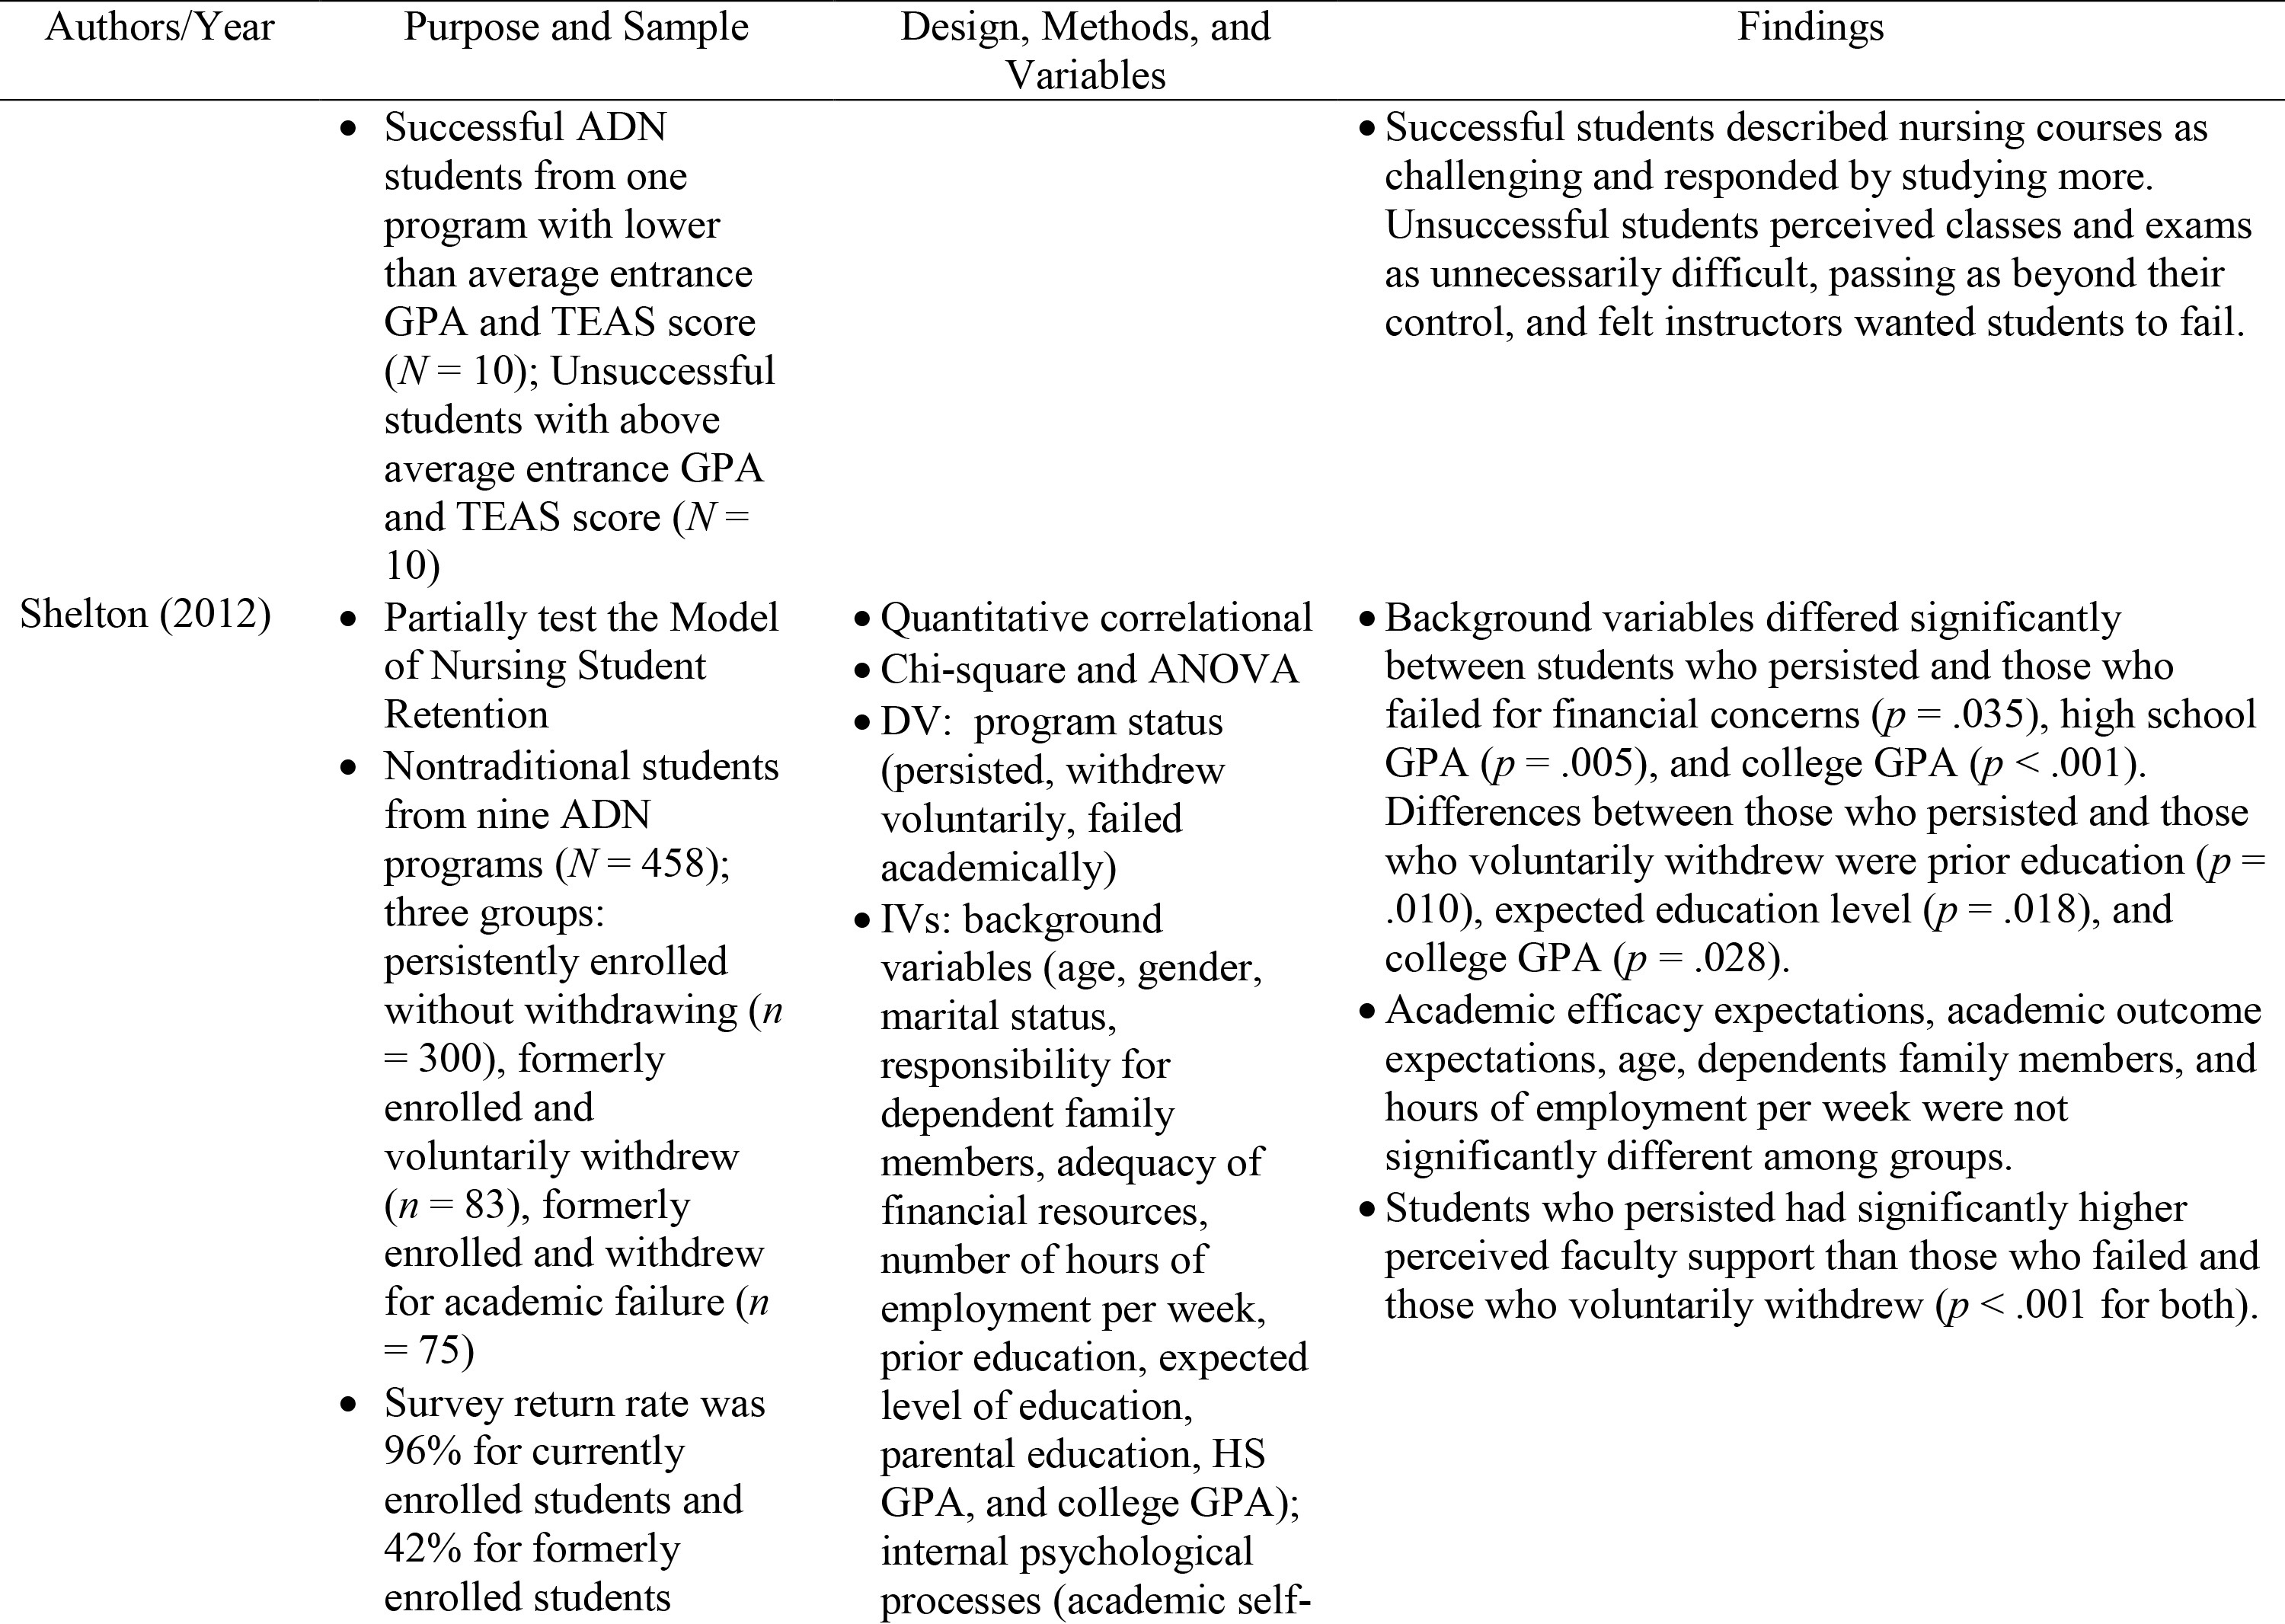 Admission Factors Associated with Success in ADN Programs